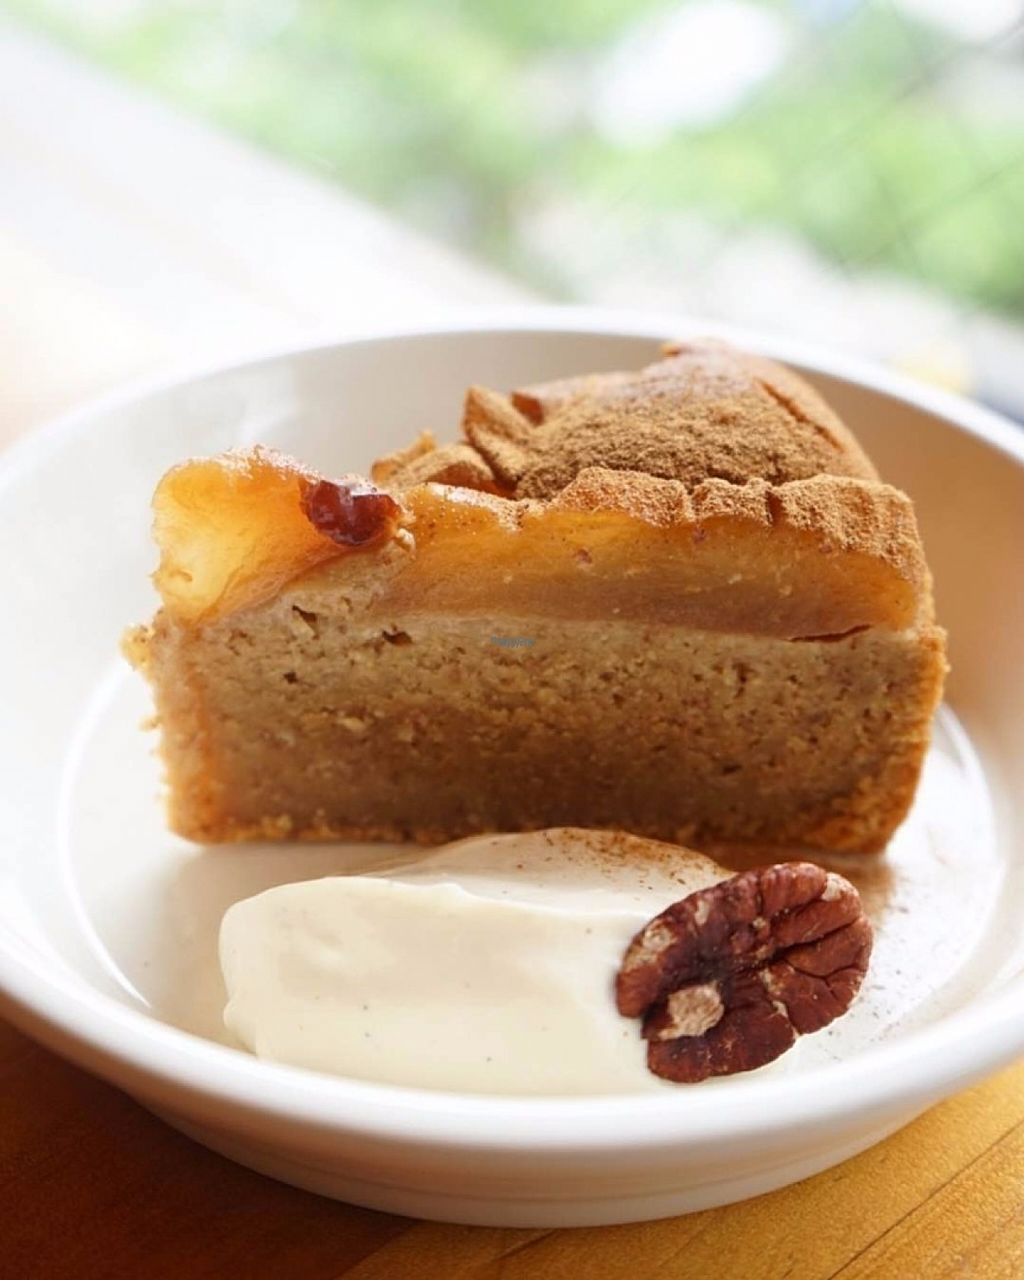 "Photo of Cafe Atl  by <a href=""/members/profile/EmmaCebuliak"">EmmaCebuliak</a> <br/>Apple cake with vegan whipped cream <br/> August 23, 2016  - <a href='/contact/abuse/image/25368/170943'>Report</a>"